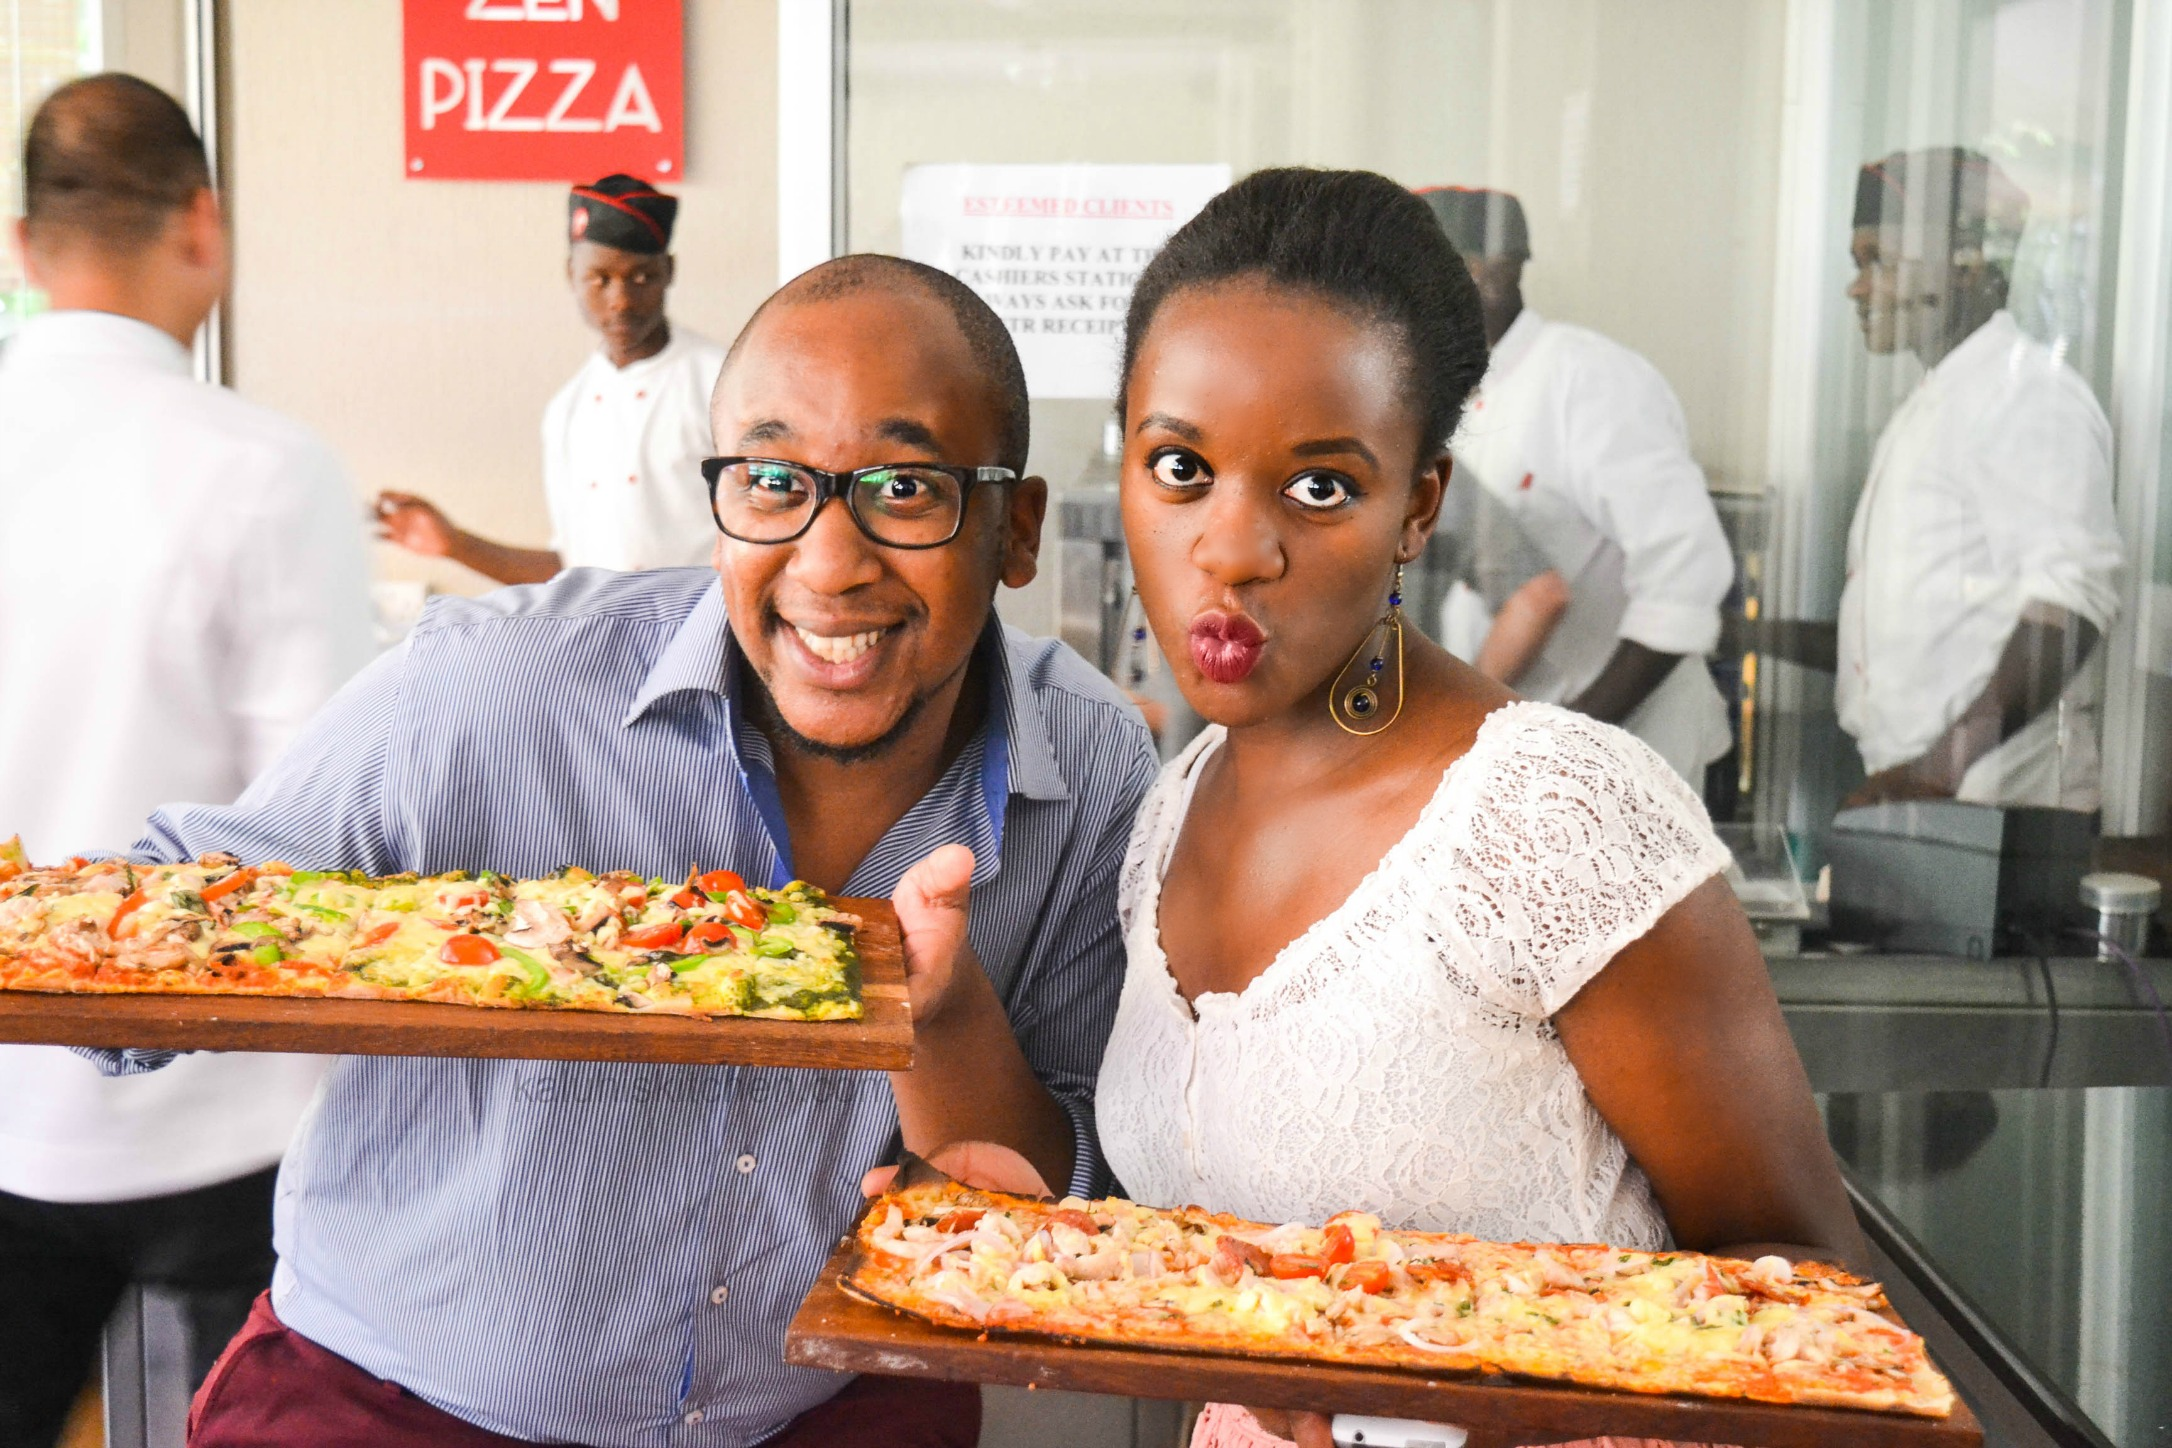 Jayson Mbogo of jaytakeapic.com and Kaluhi Adagala of kaluhiskitchen.com at the official press launch for Nairobi Pizza Festival 2015_kenyan food bloggers